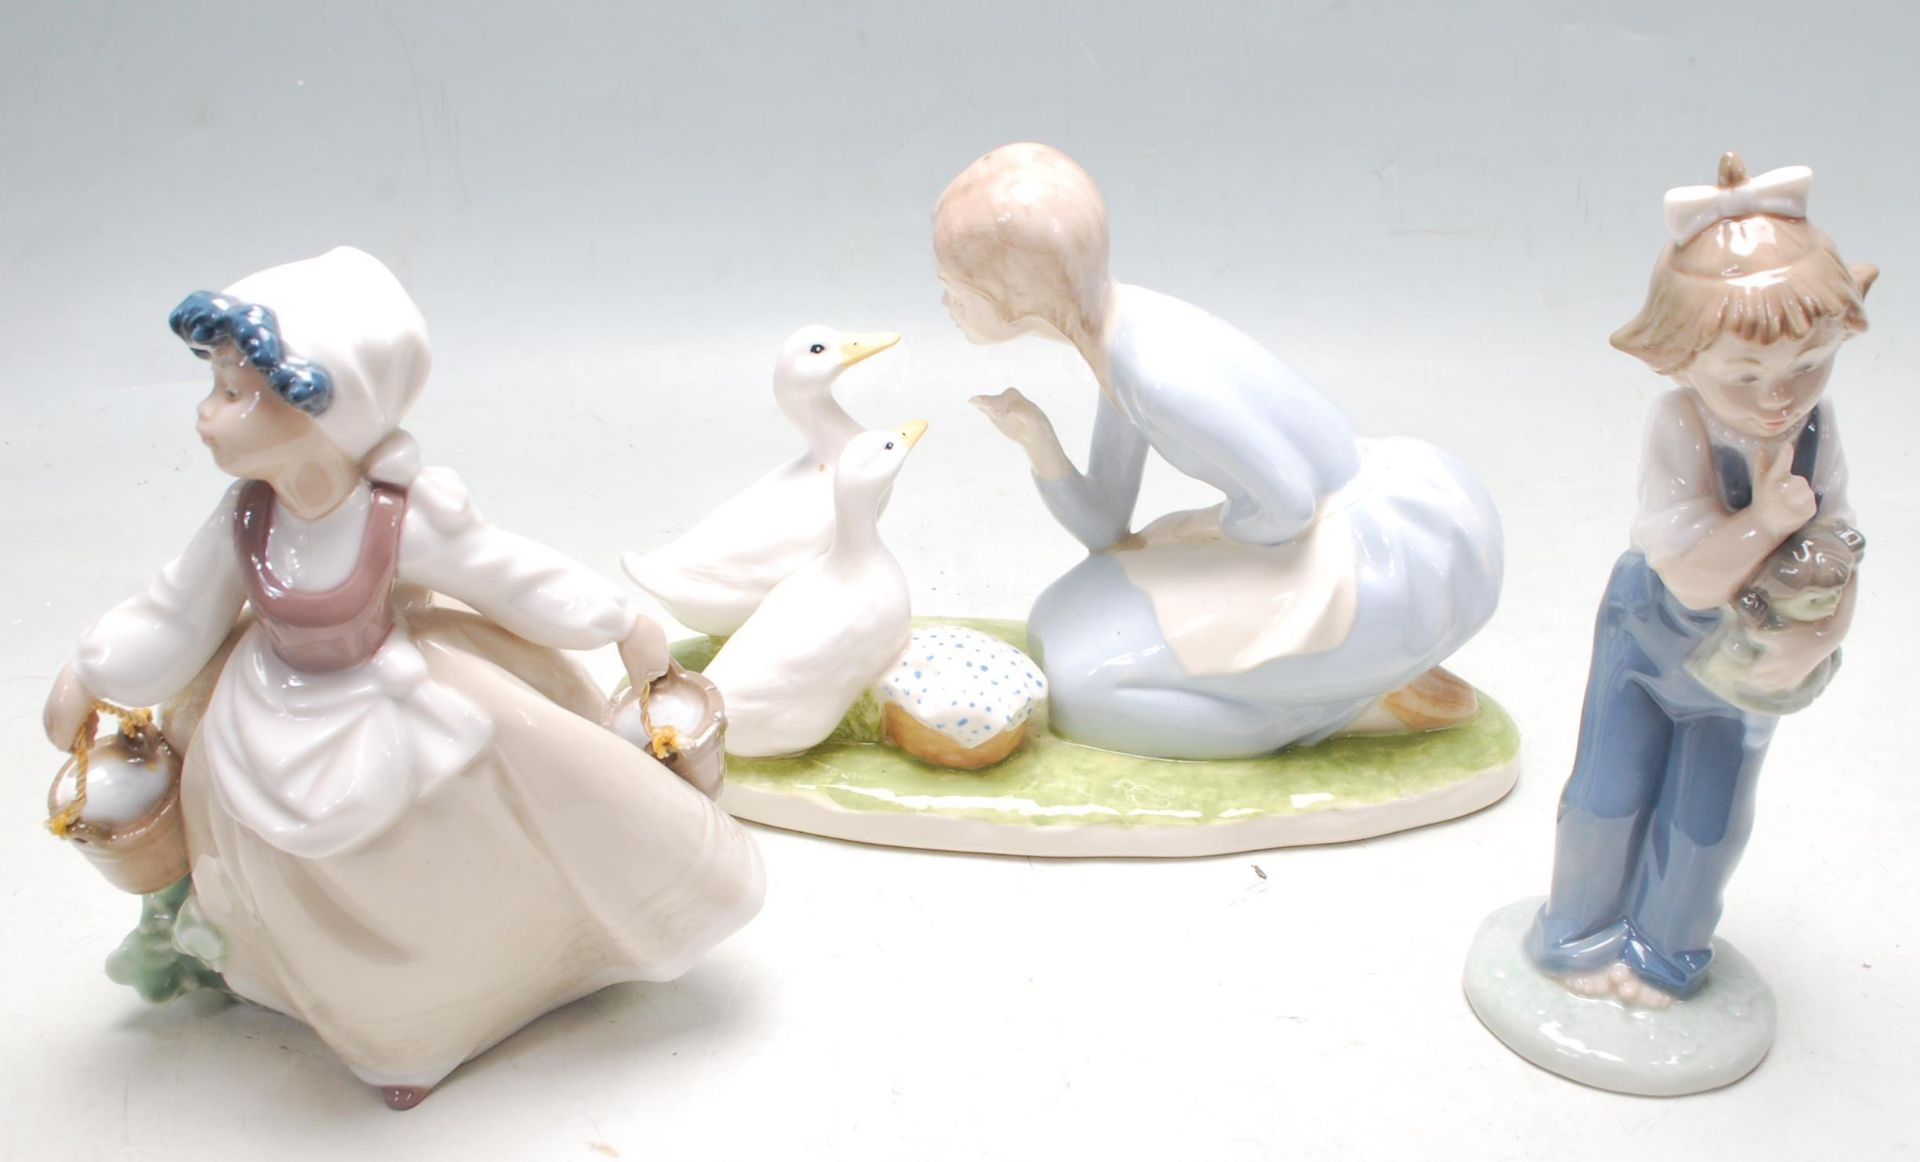 COLELCTION OF LATE 20TH CENTURY CERAMIC PORCELAIN NAO FIGURINES - Image 5 of 8